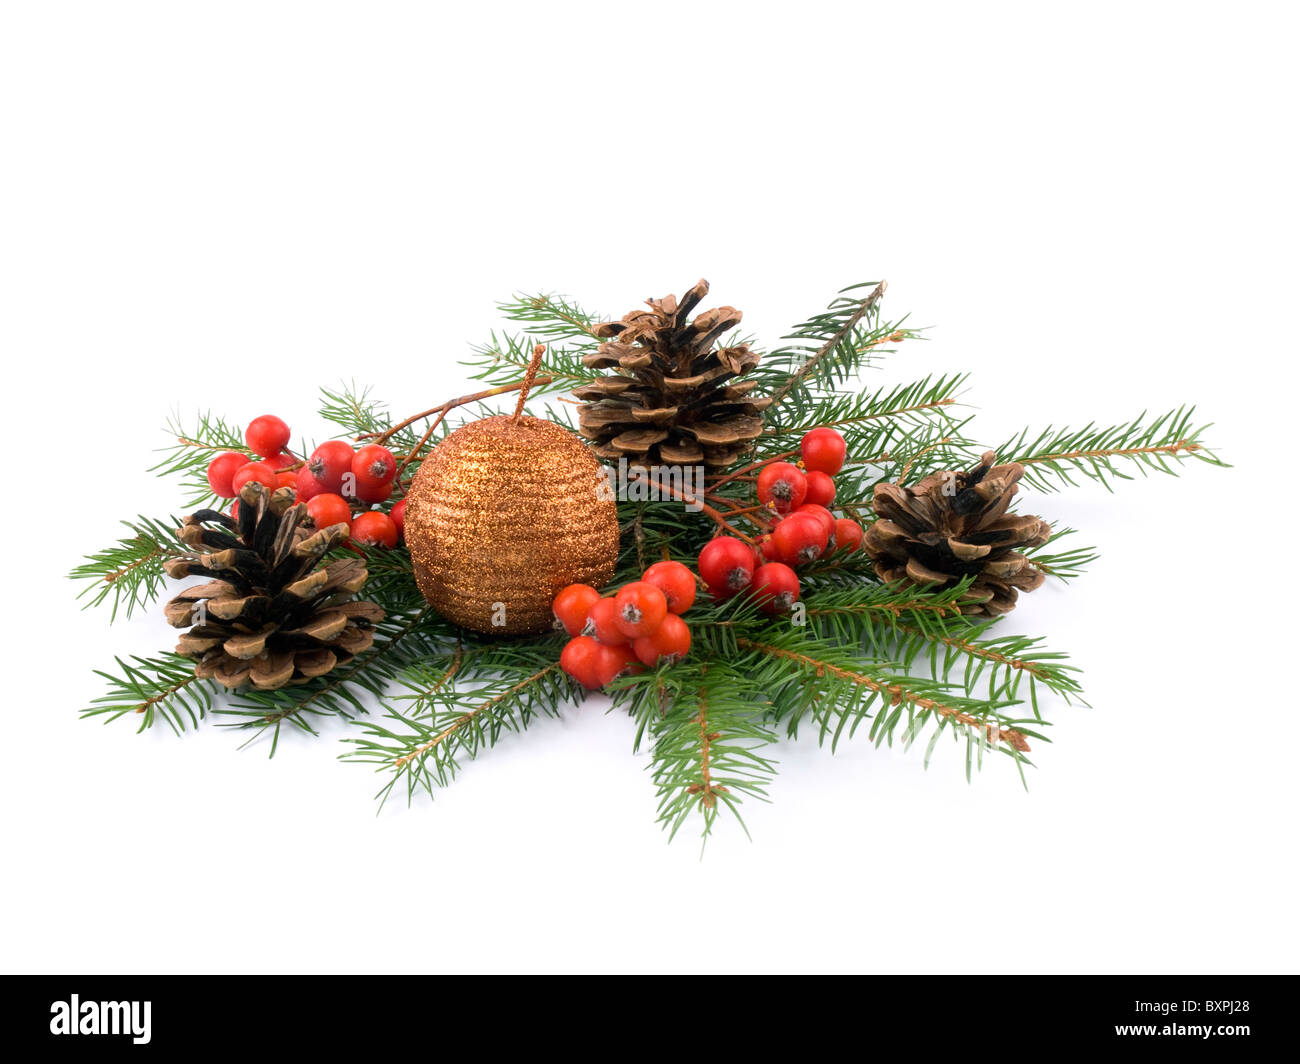 Sparkling candle, rowan, cones and fresh spruce on white background - Stock Image